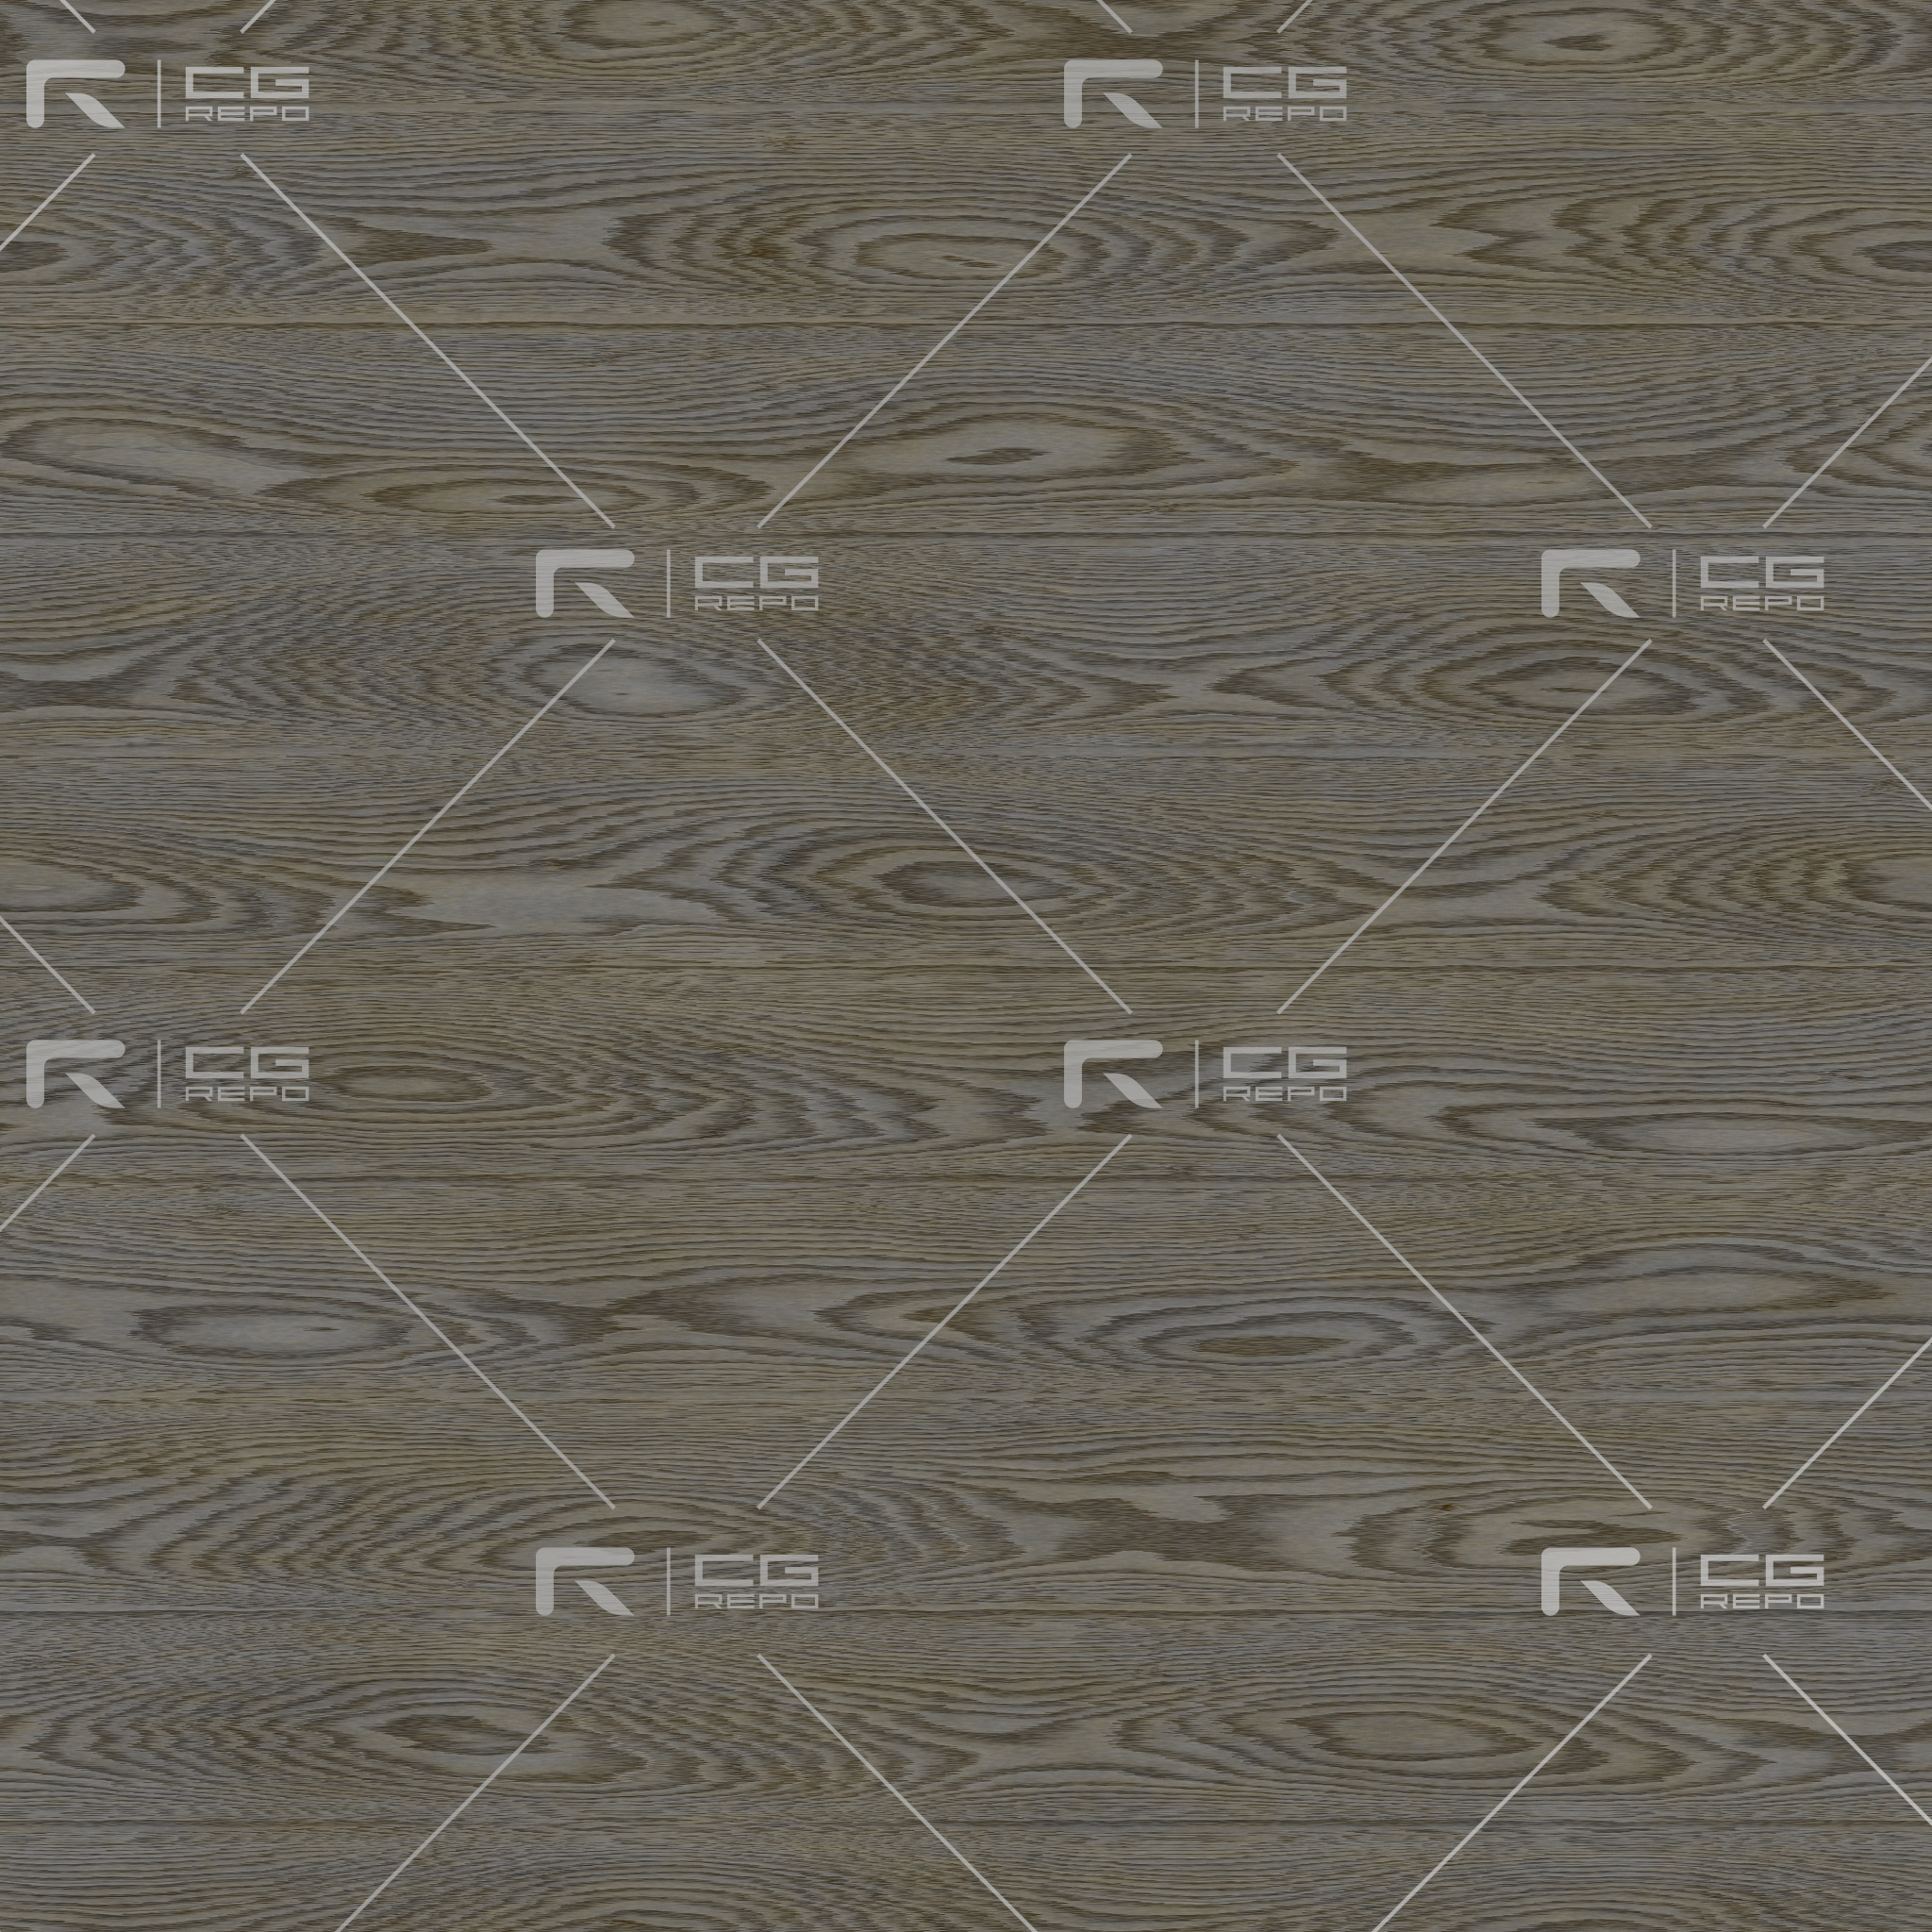 Oak - Painted Grunge Grey - Cathedral Shape BaseColor Texture